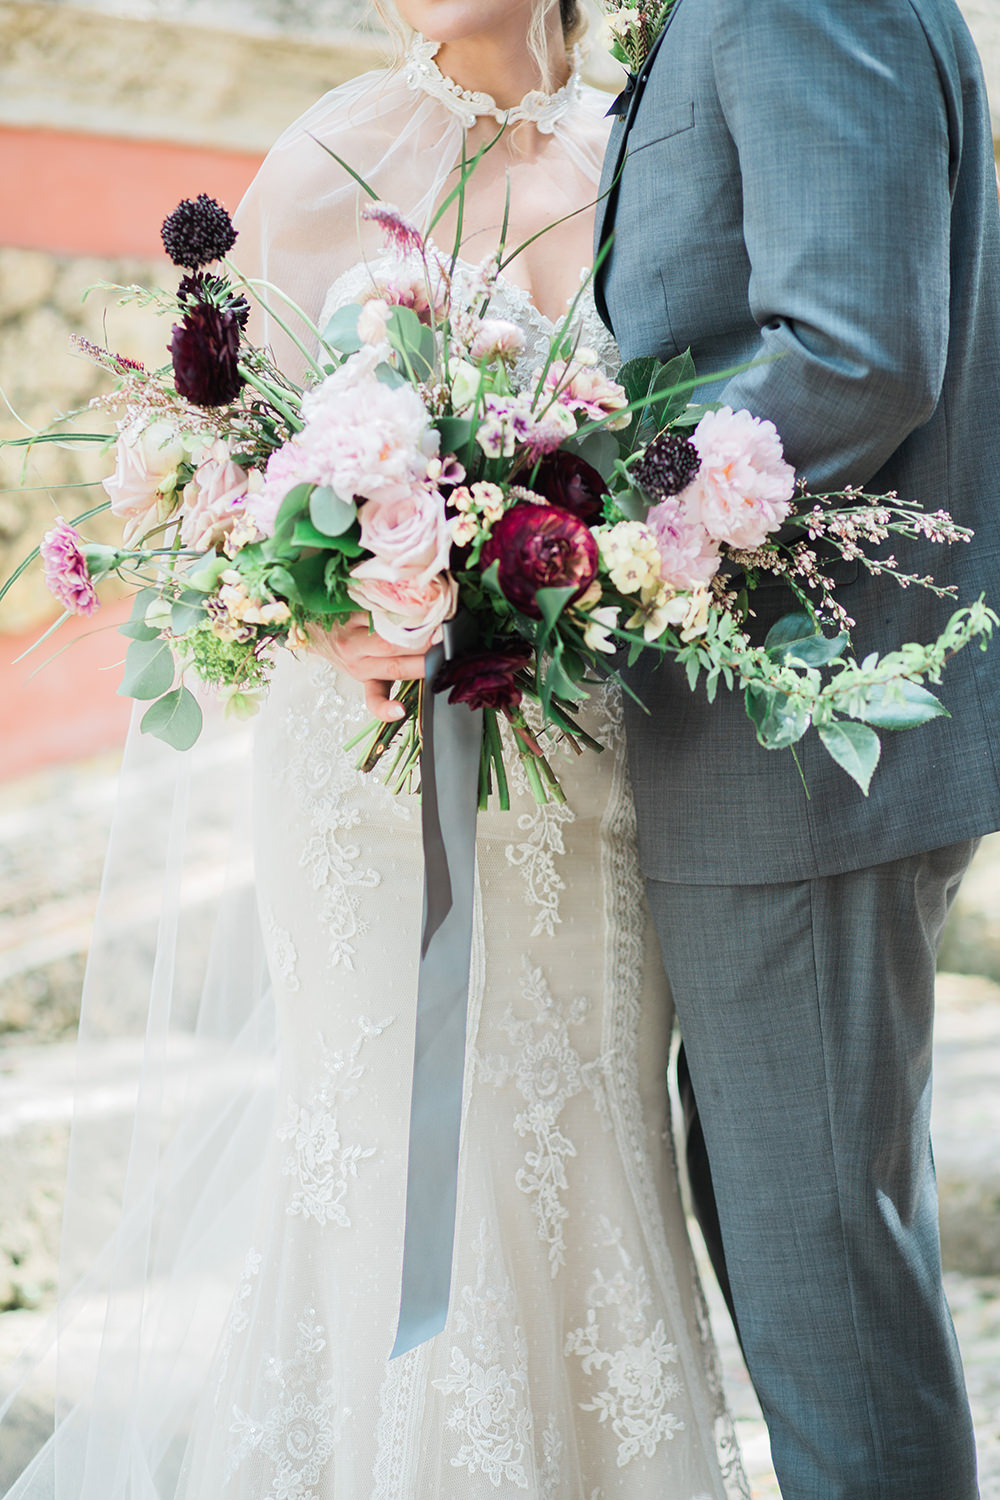 romantic wedding bouquets - photo by Erica J Photography https://ruffledblog.com/old-world-wedding-editorial-at-vizcaya-museum